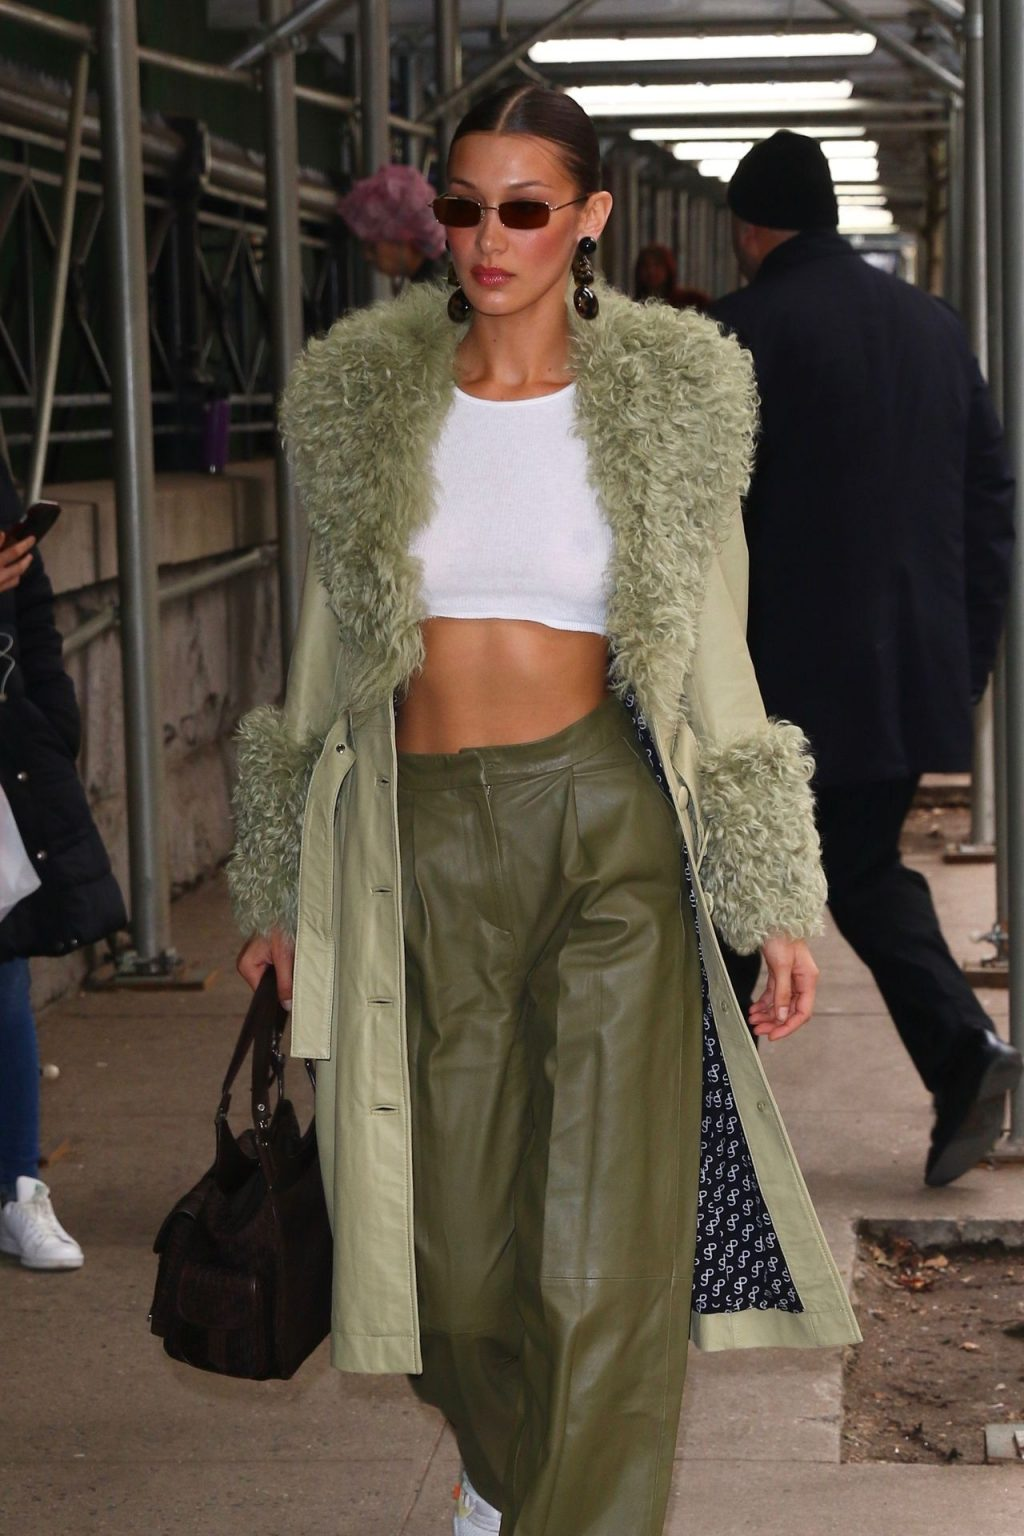 Bella Hadid See through The Fappening Blog 53 1024x1536 - Braless Bella Hadid Arrives at the Park Avenue Armory for the Marc Jacobs Fashion Show (59 Photos)